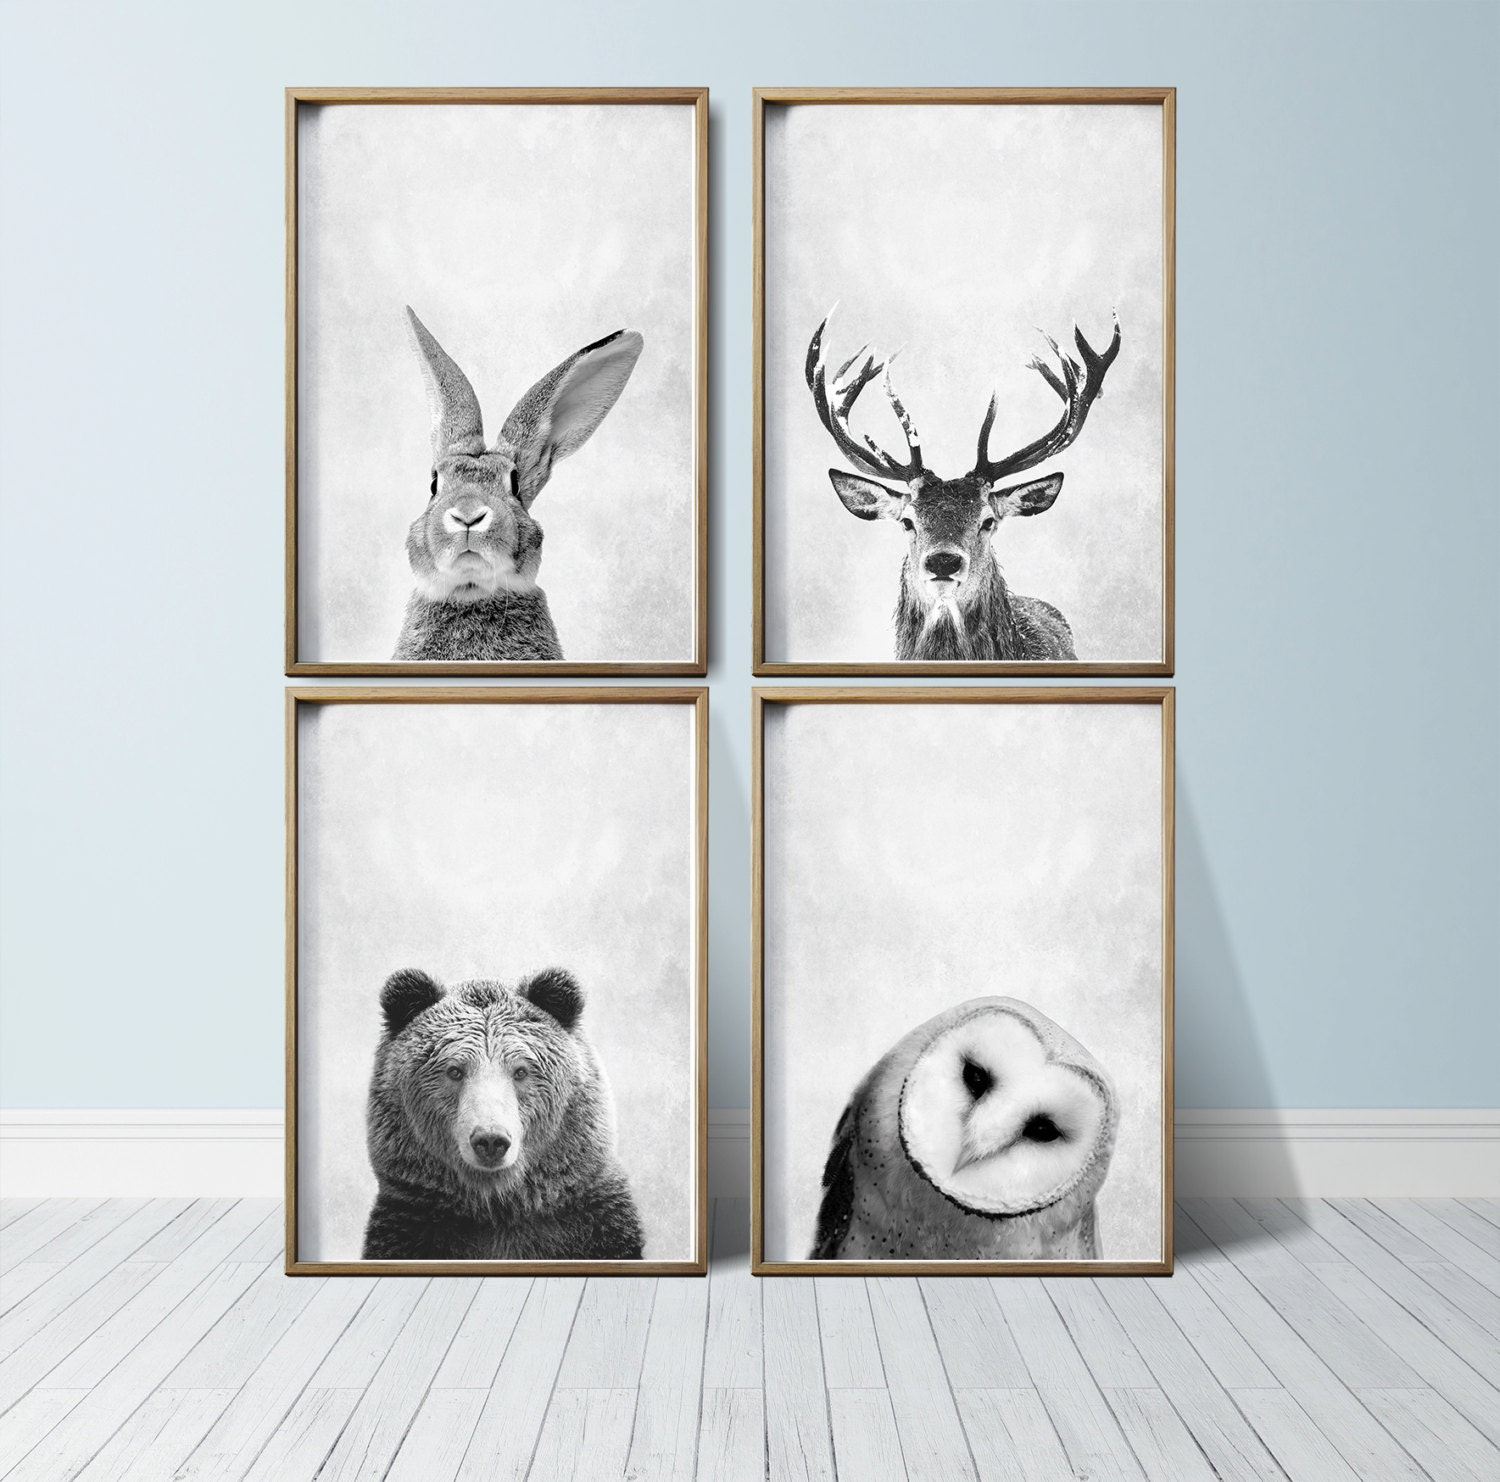 Wall Art For Nursery Ideas : Nursery wall art animal print woodland decor